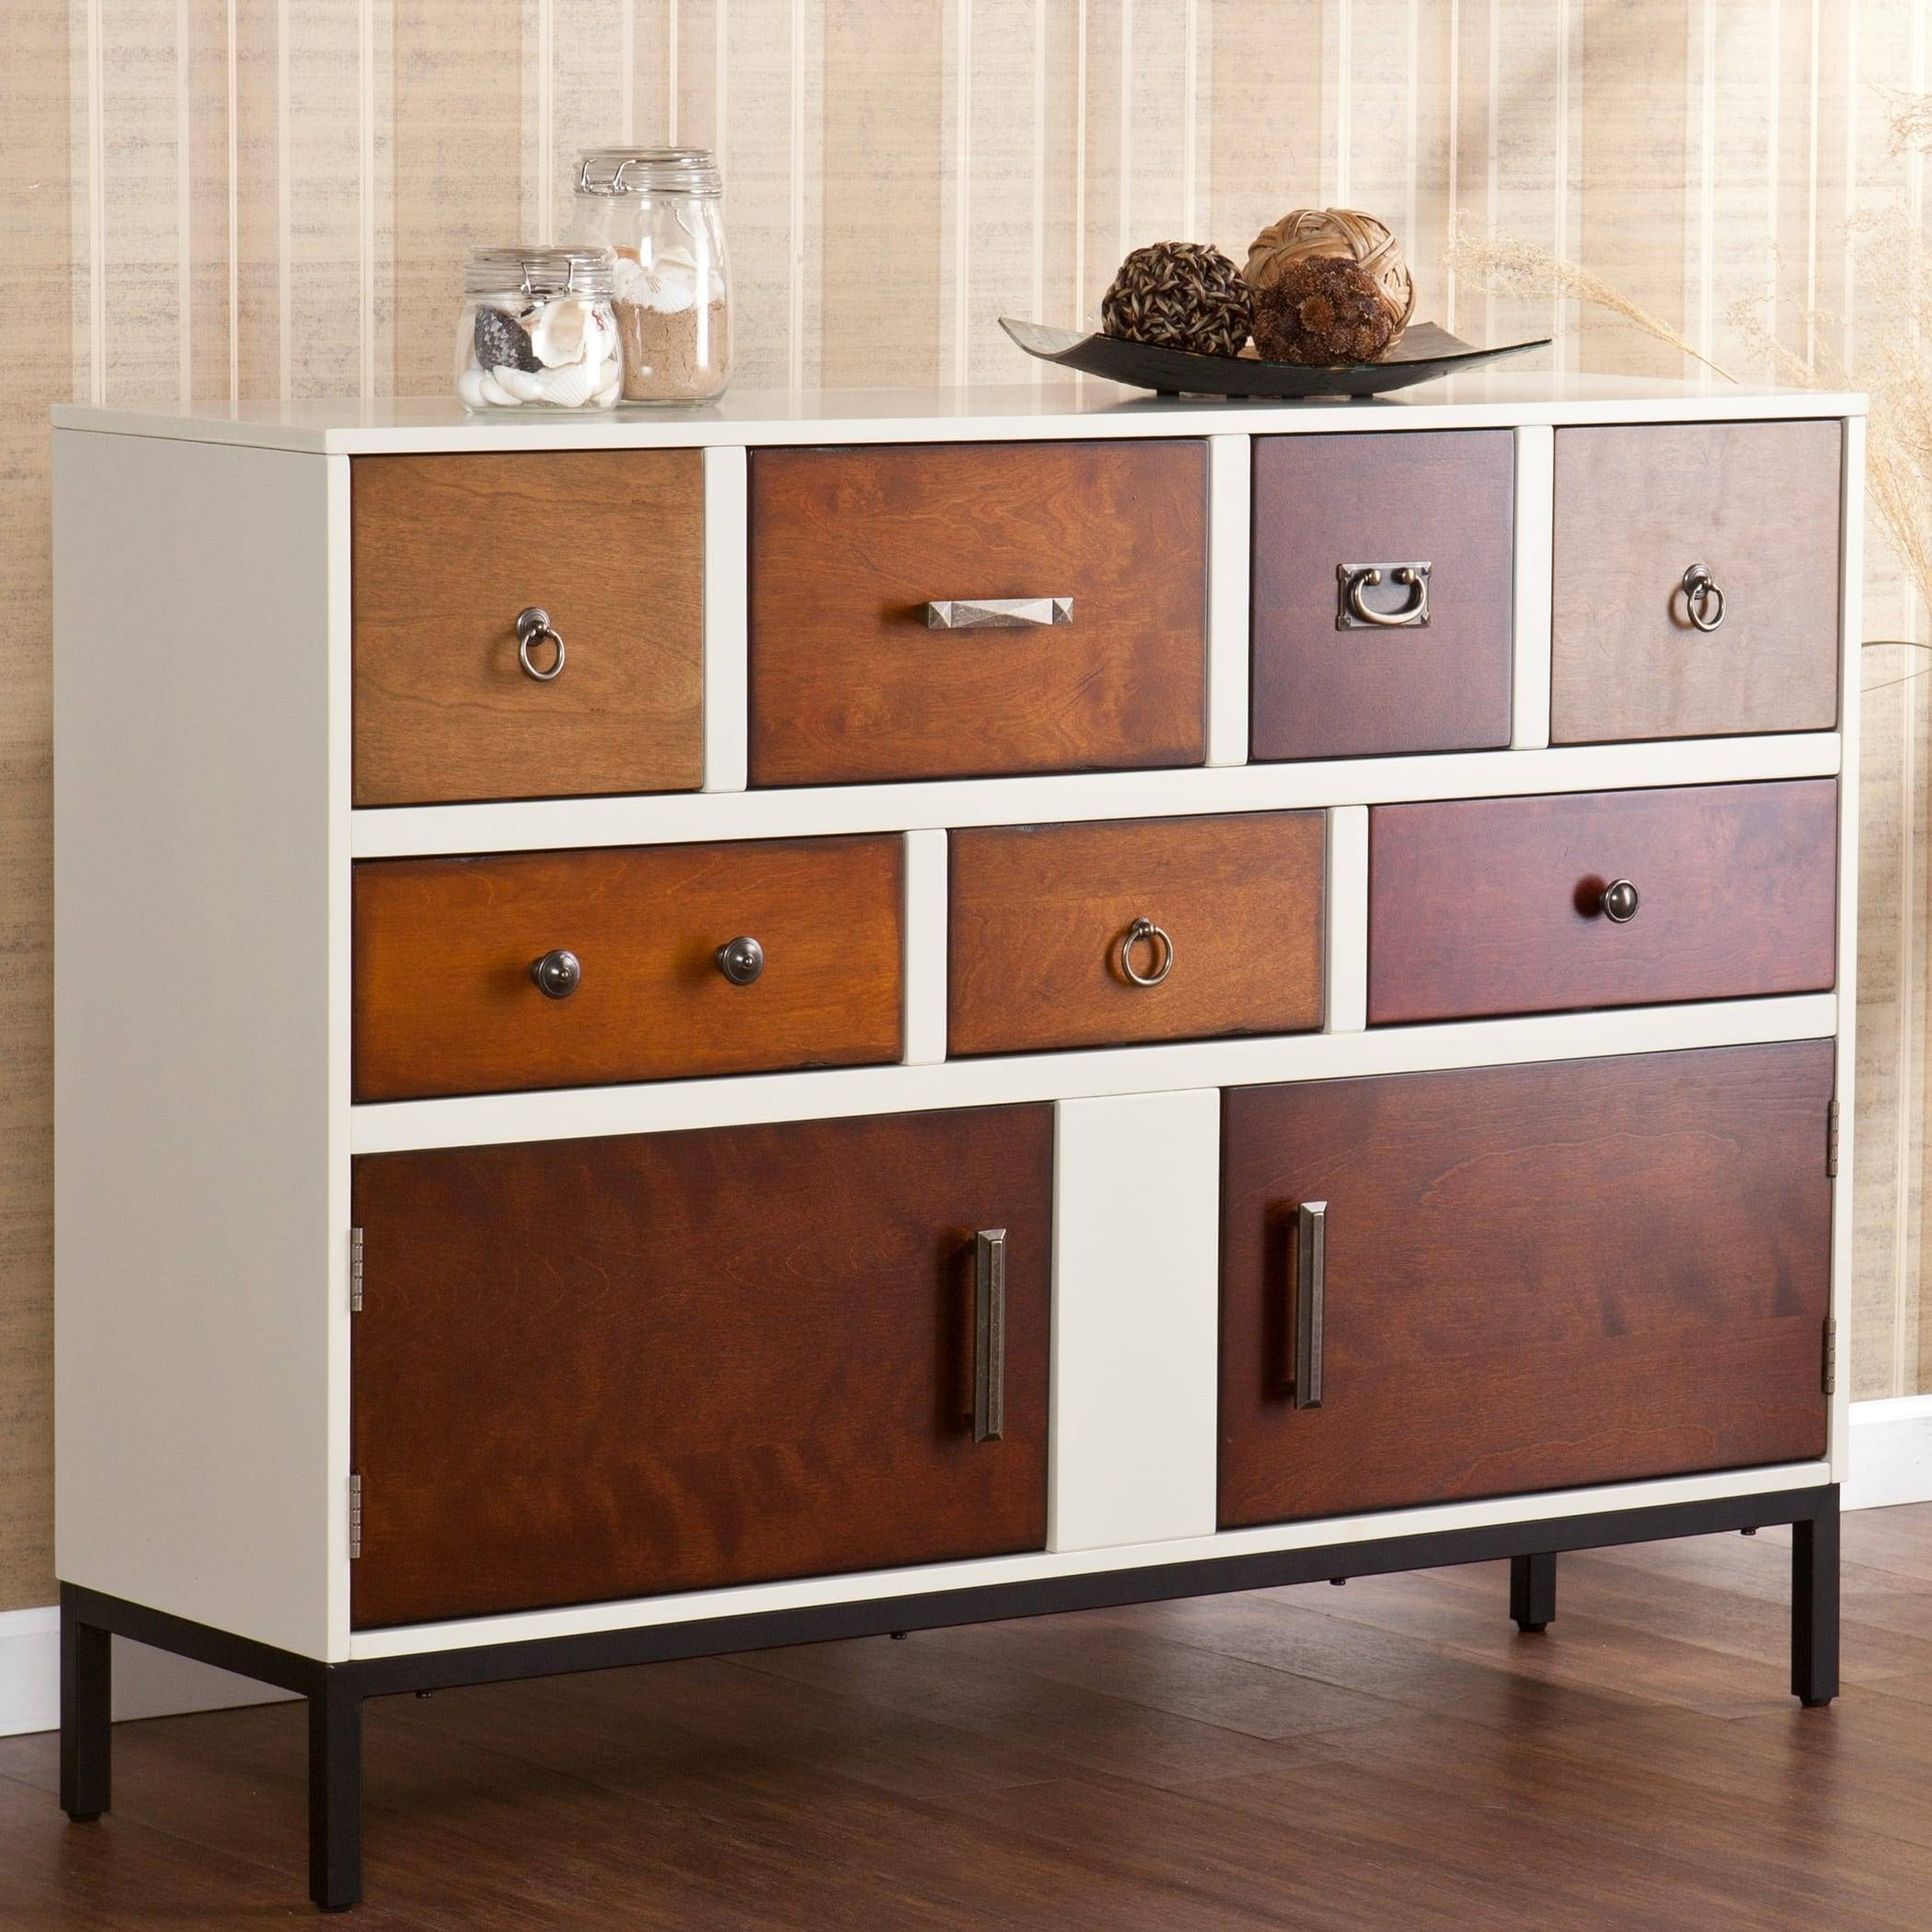 Christian Multi-Finish Dining Room Buffet - Free Shipping Today pertaining to Multi Drawer Sideboards (Image 12 of 30)